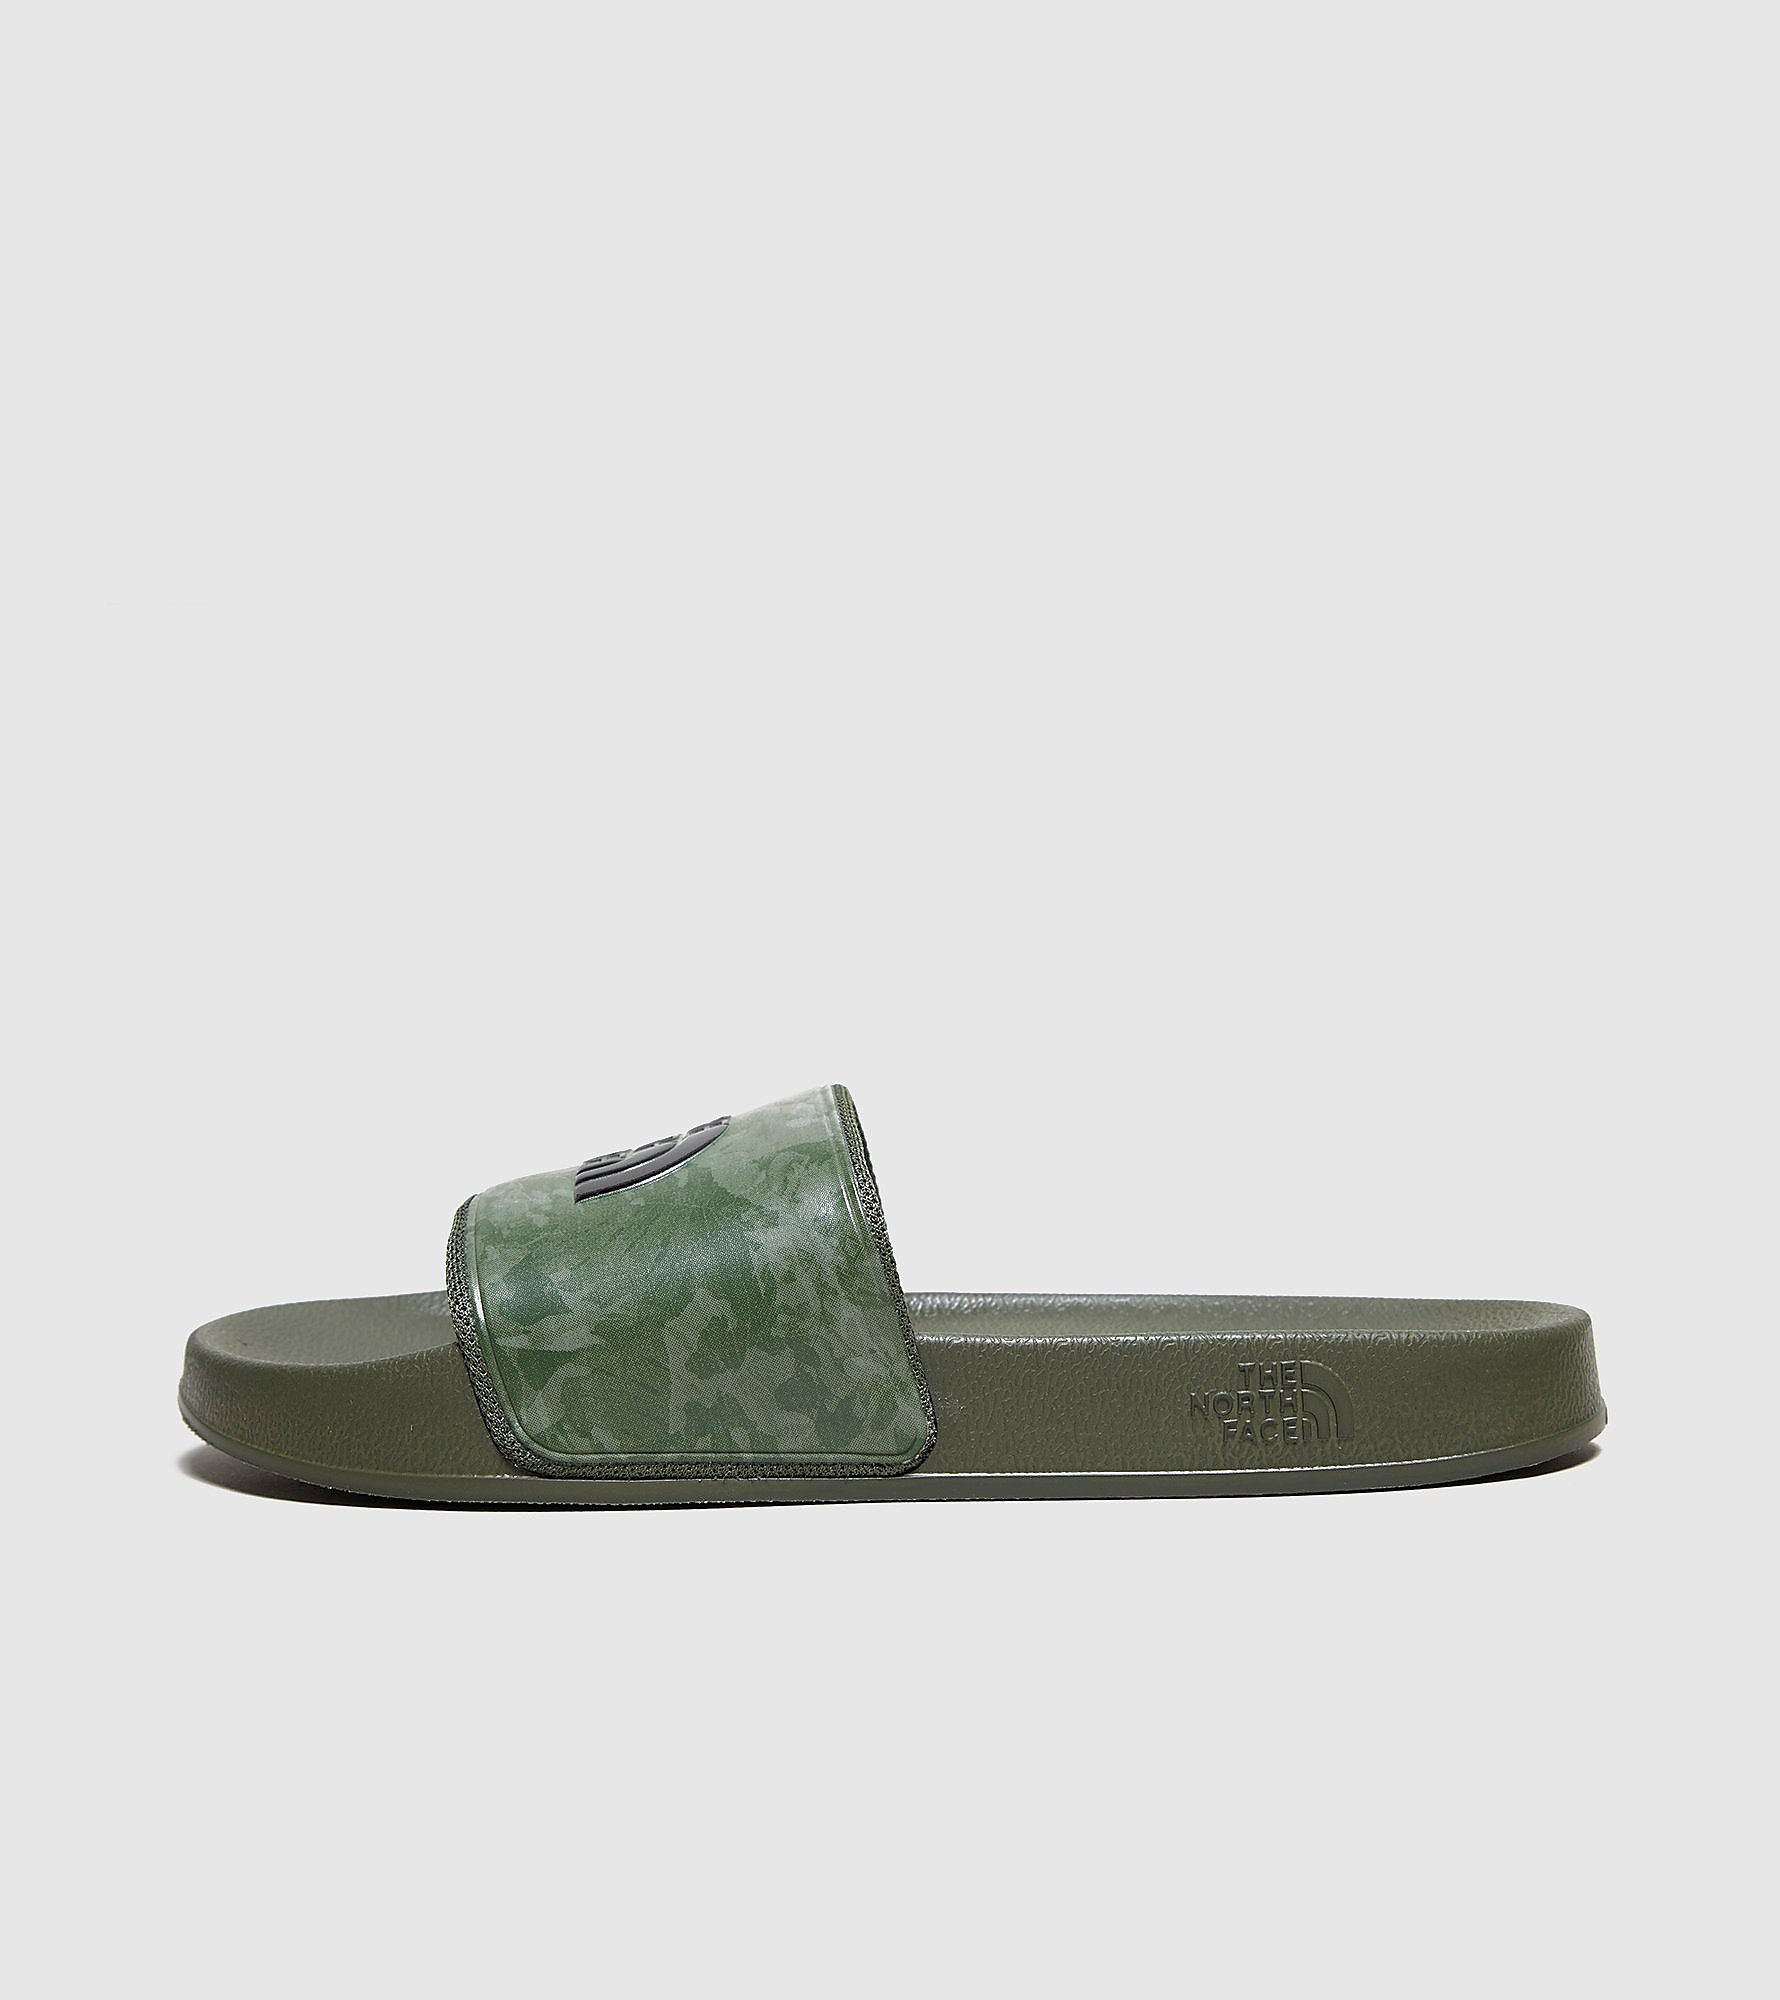 The North Face Slide Slippers